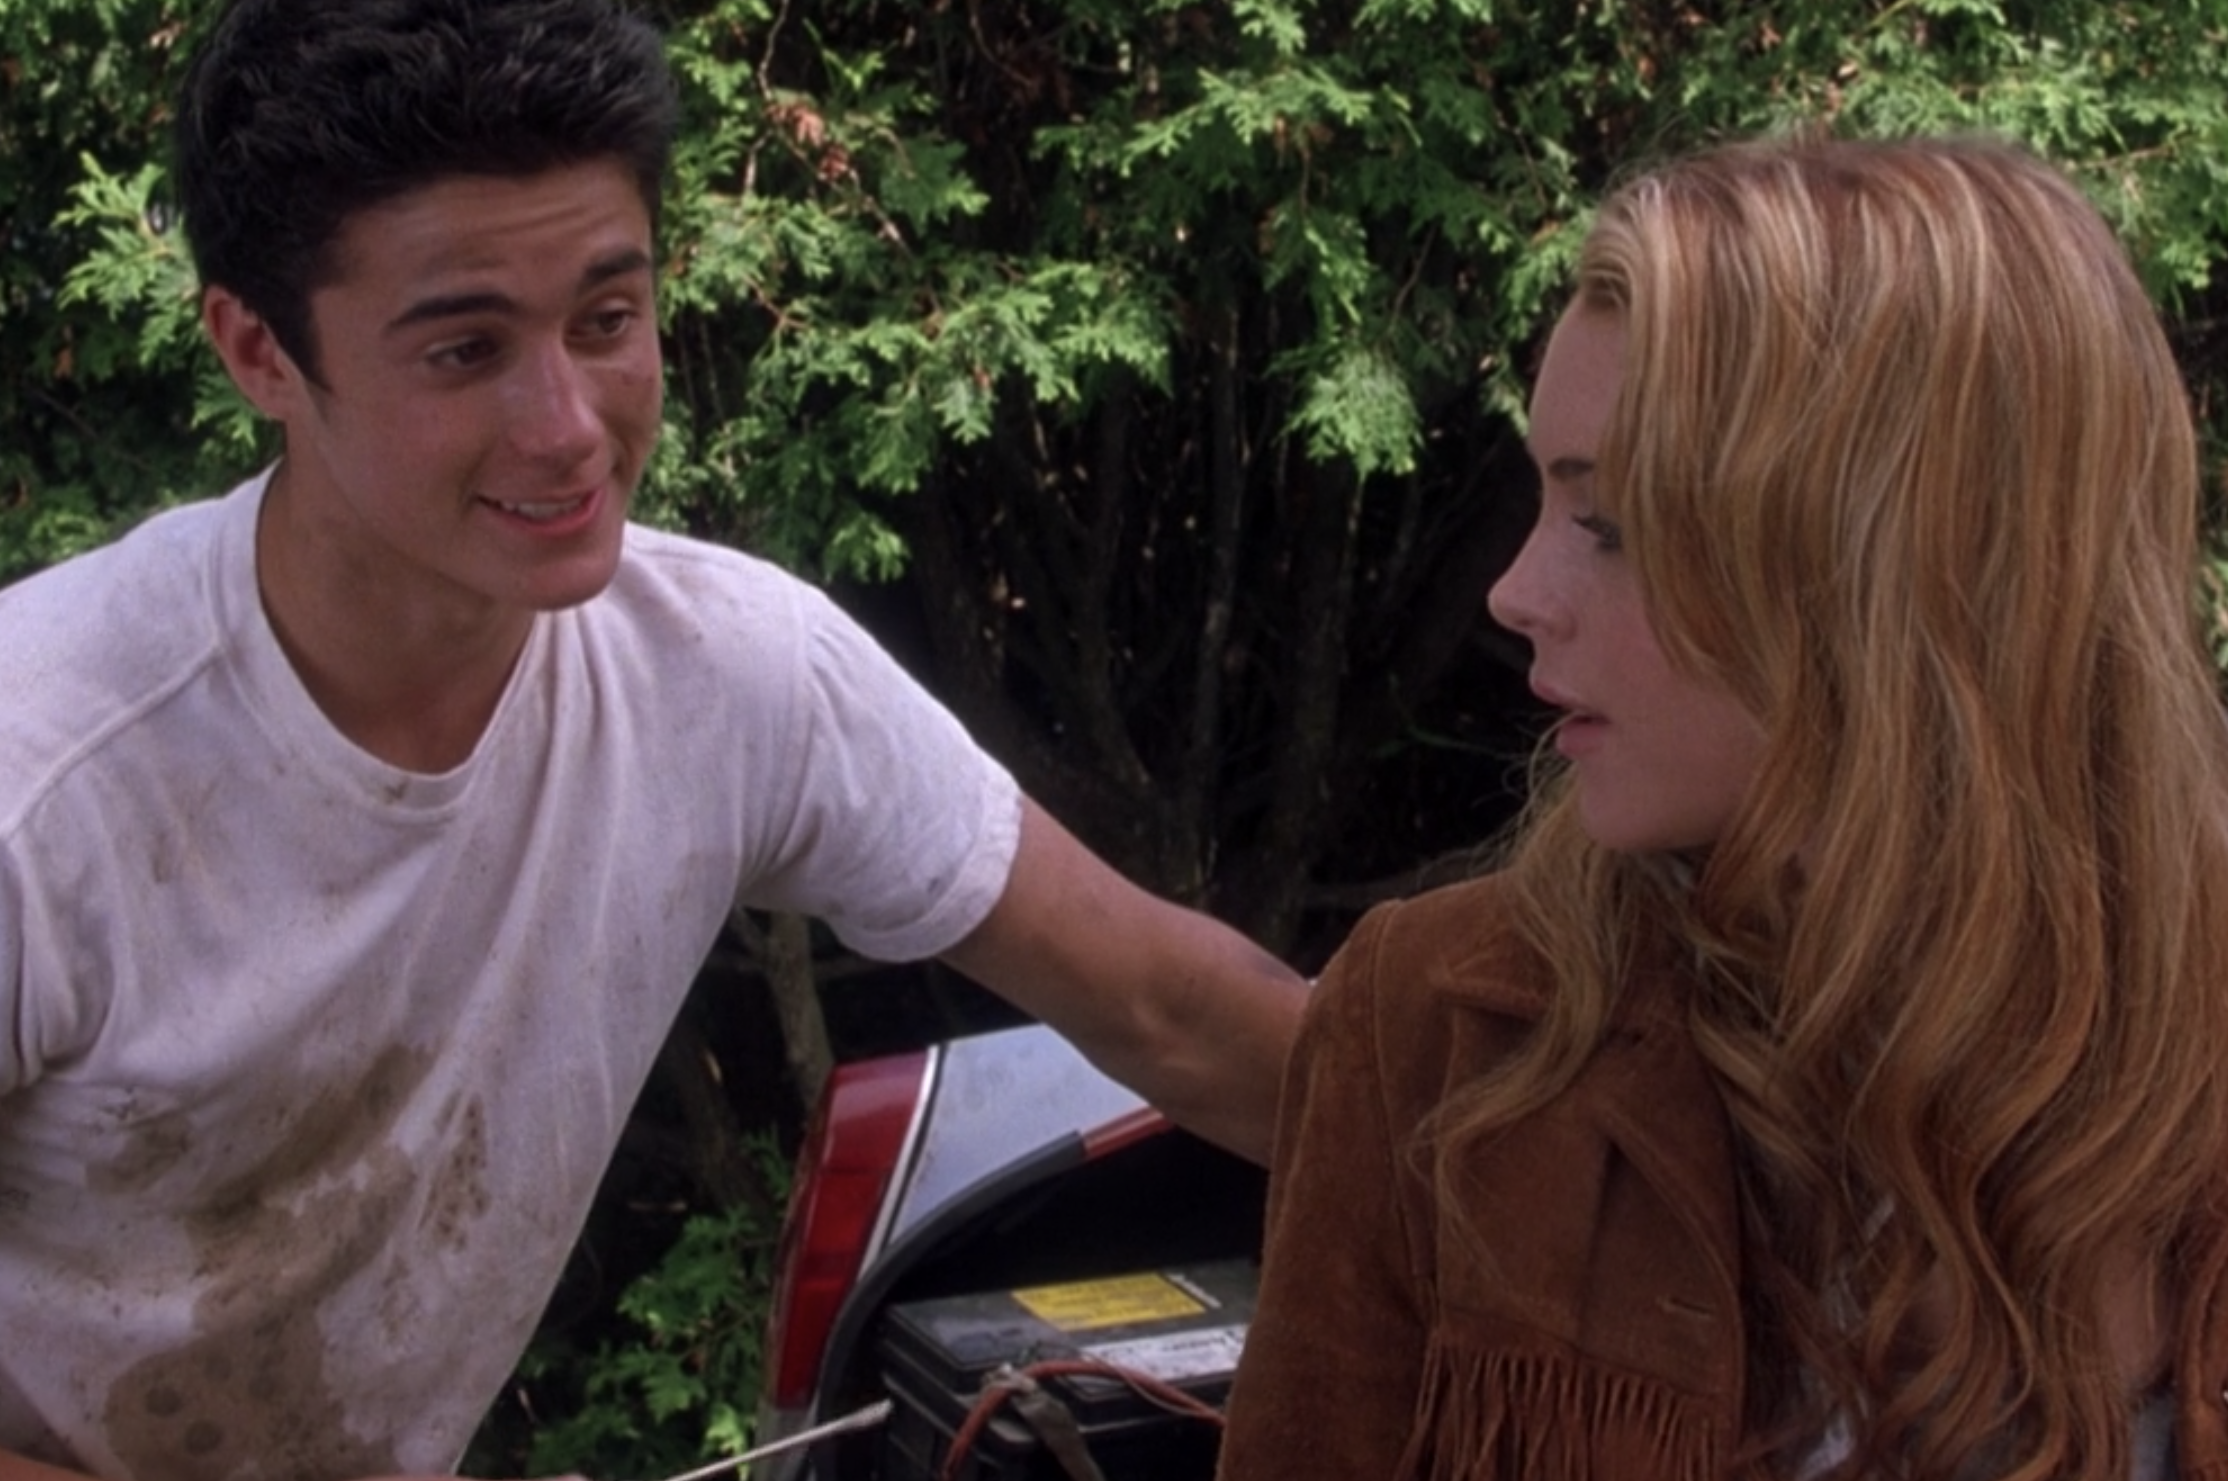 "Eli Marienthal stands next to Lindsay Lohan as Lola and her car in a grease-stained shirt as Sam in ""Confessions of a Teenage Drama Queen"""